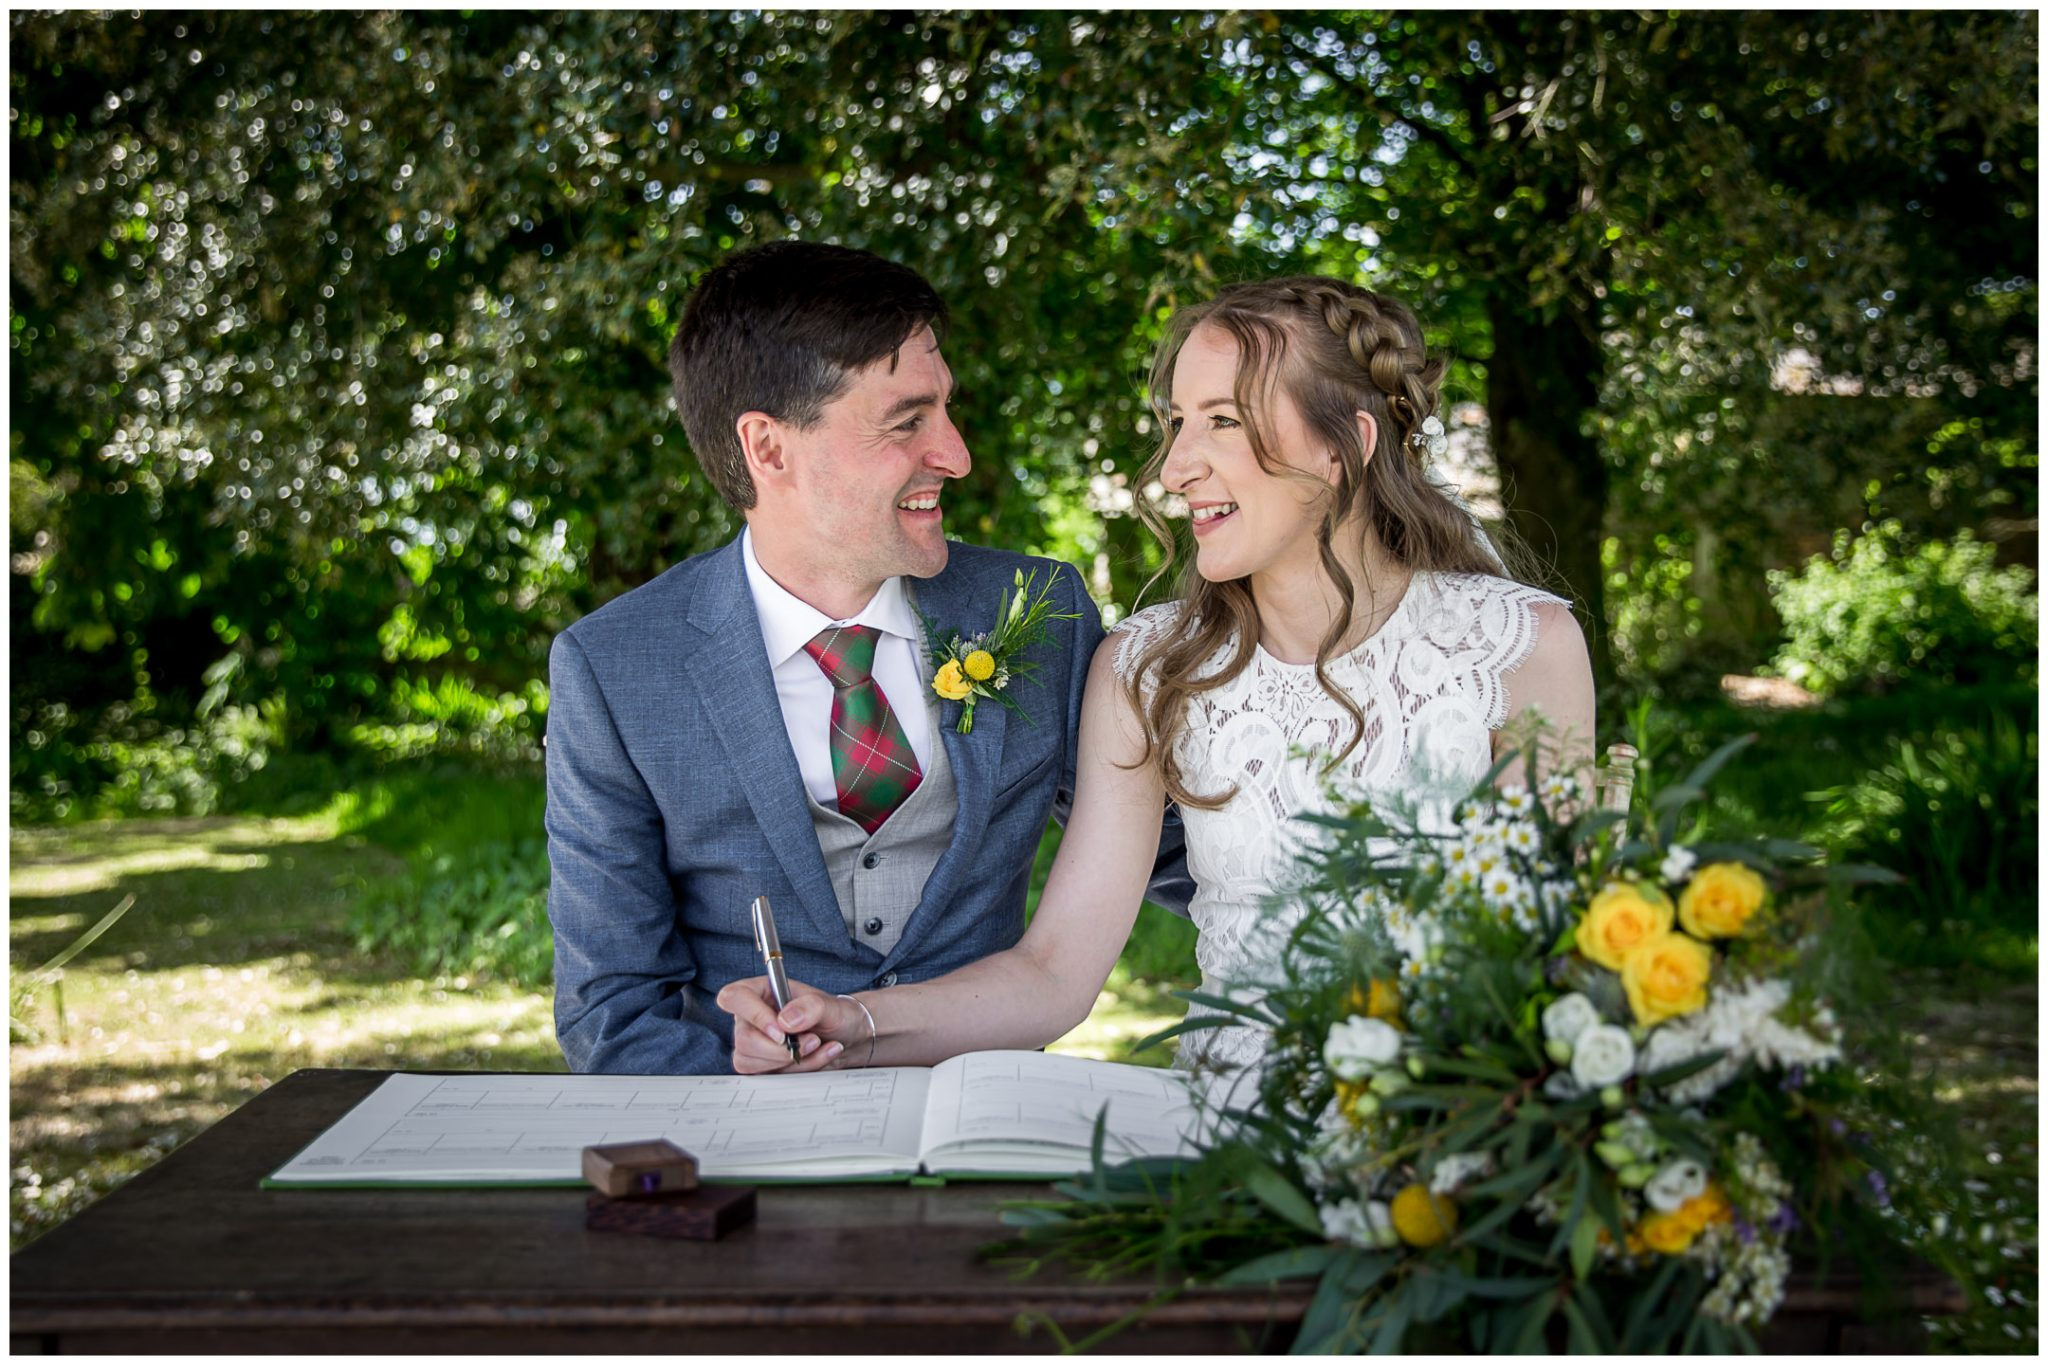 Signing of the register at Bude Cornwall outdoor wedding ceremony